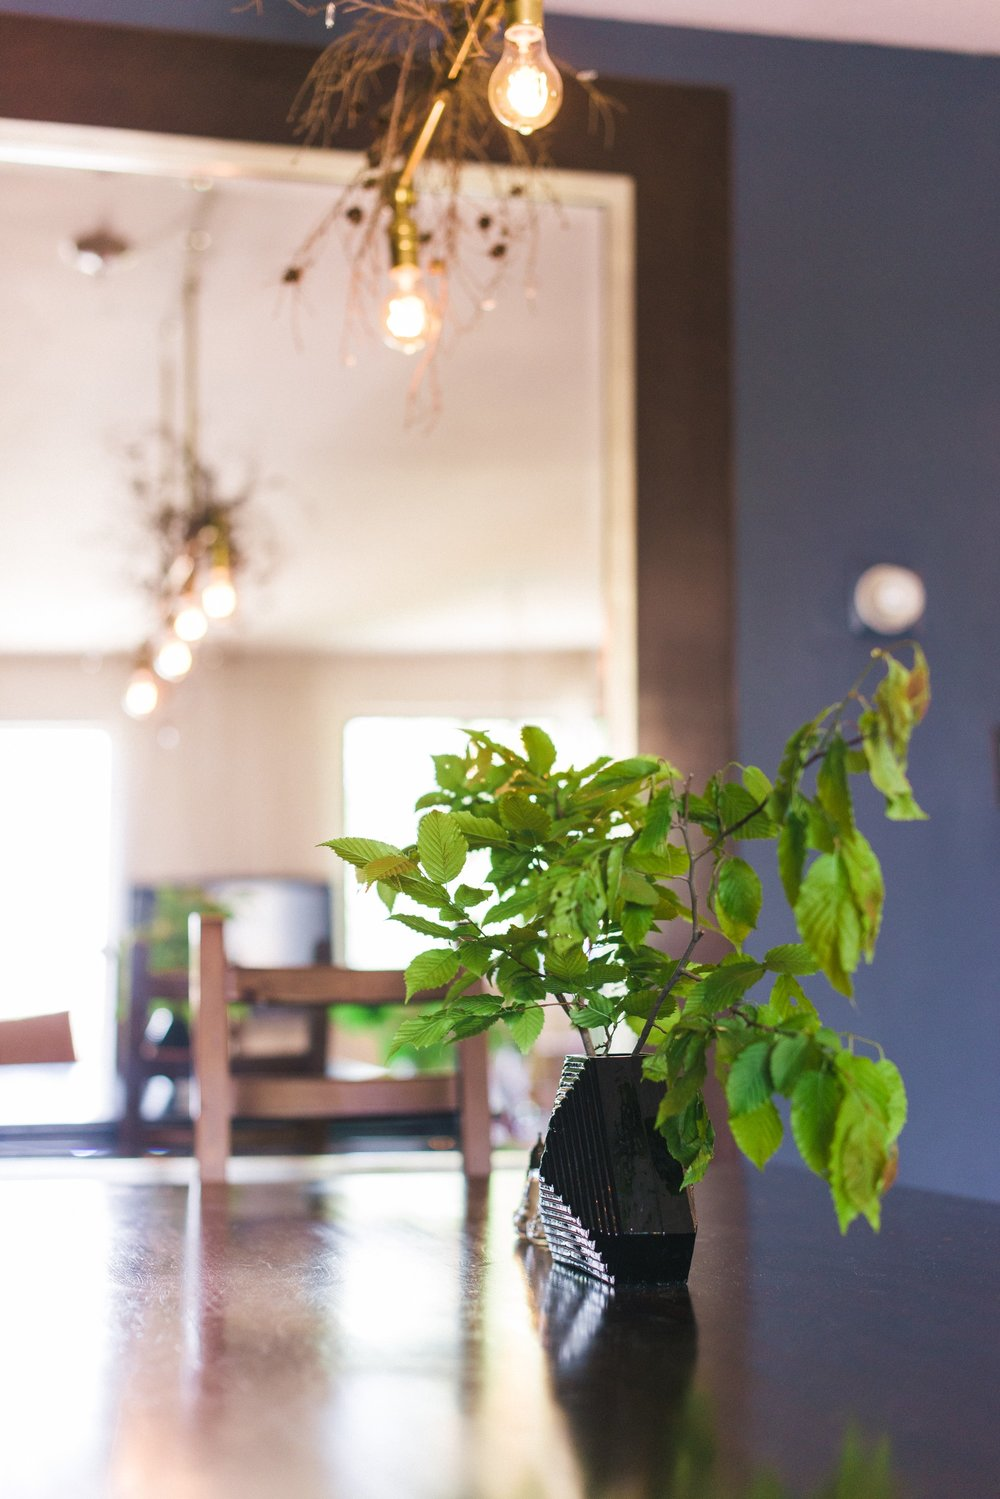 Dining room table with potted plant